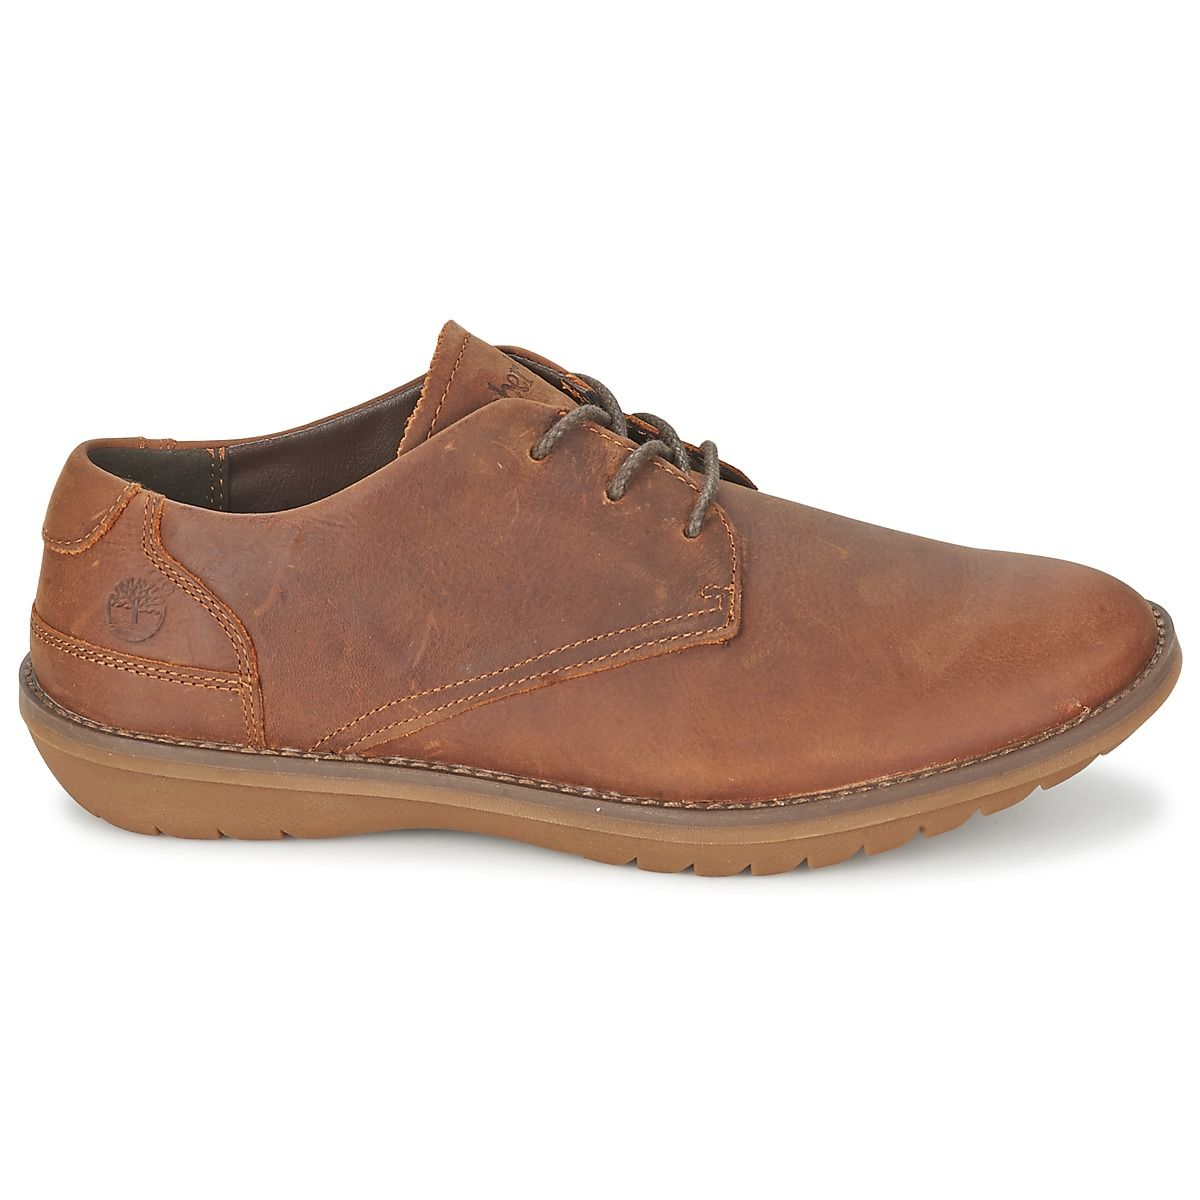 Casual men's shoes in leather from @timberland #shoes